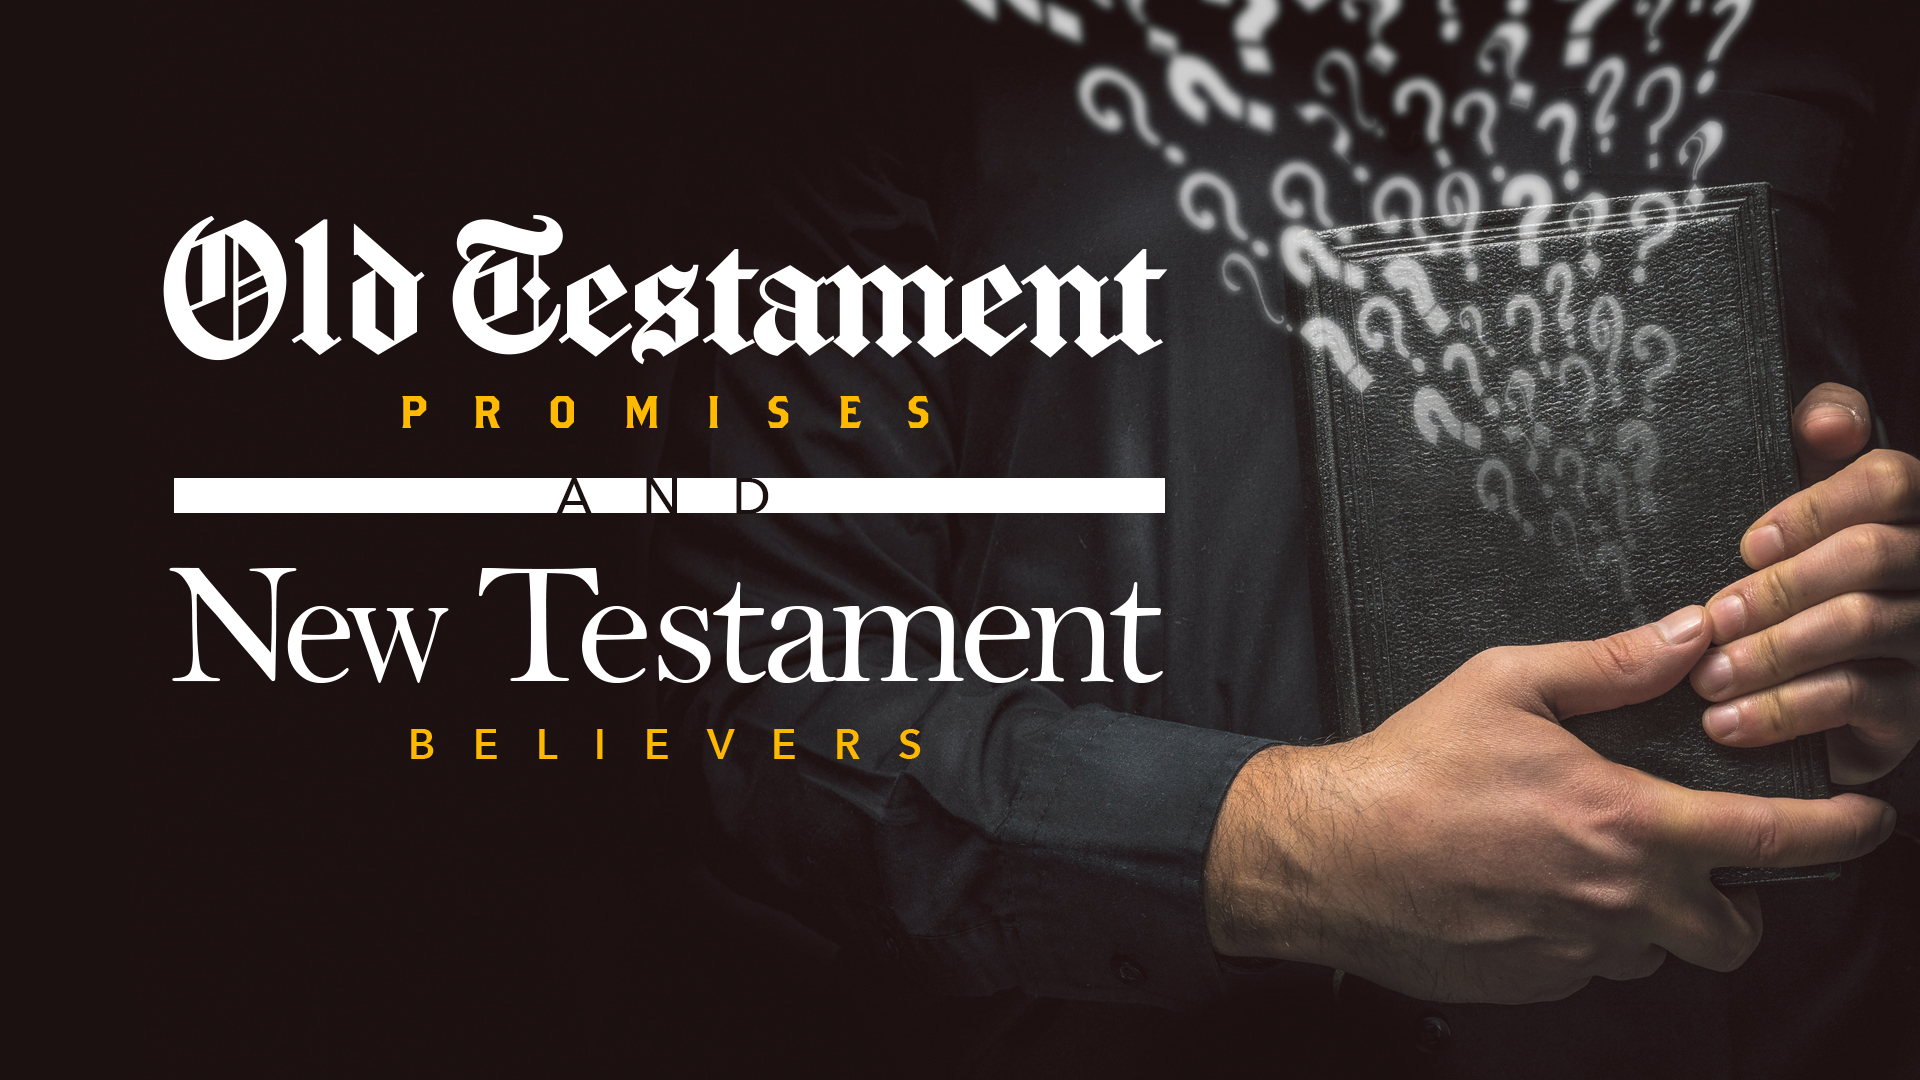 Old Testament Promises and New Testament Believers - Part 1